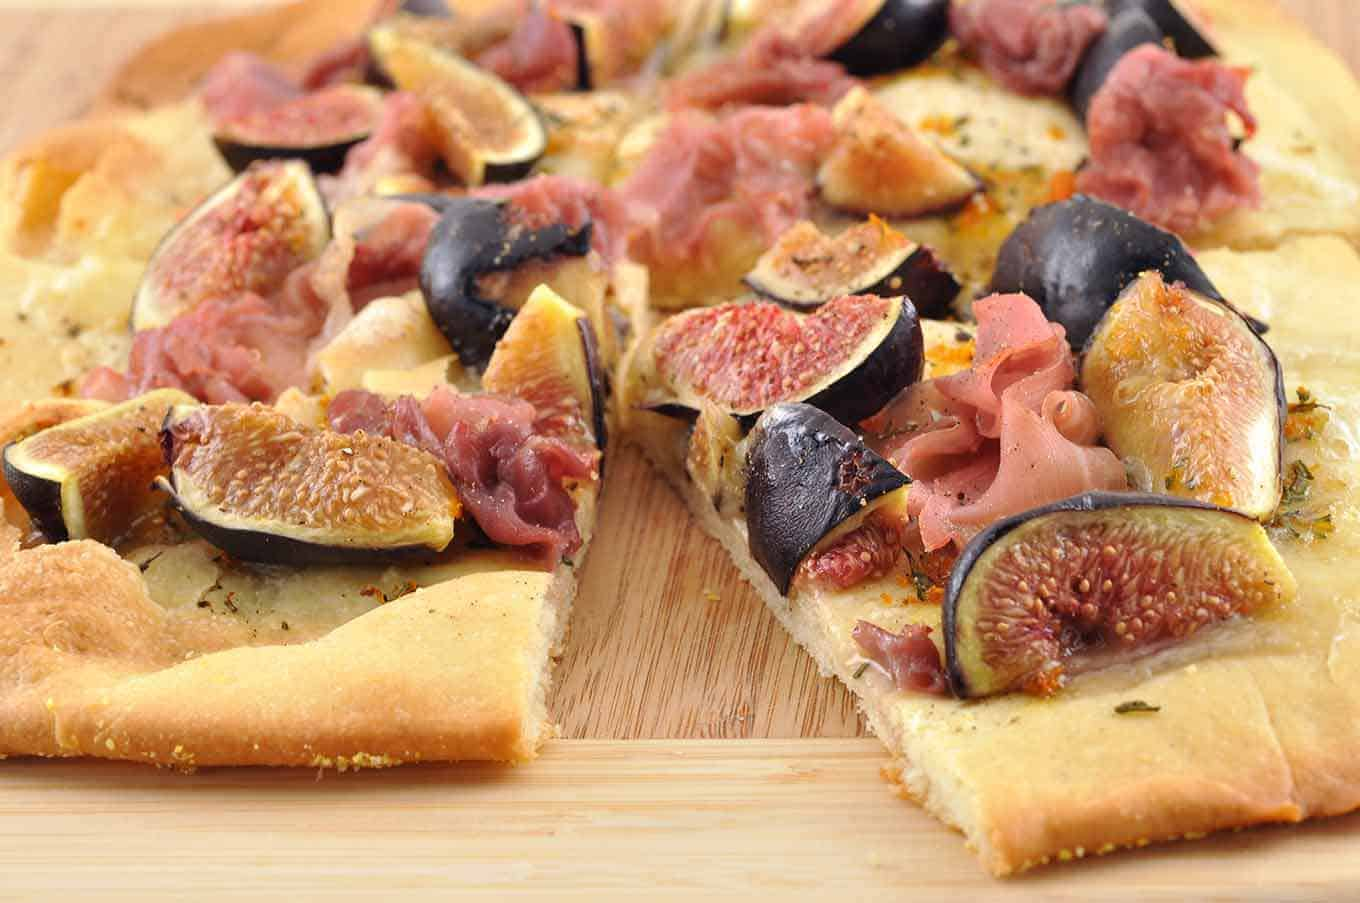 Squares of flatbread topped with fresh figs, Brie cheese and prosciutto ham on a wooden cutting board